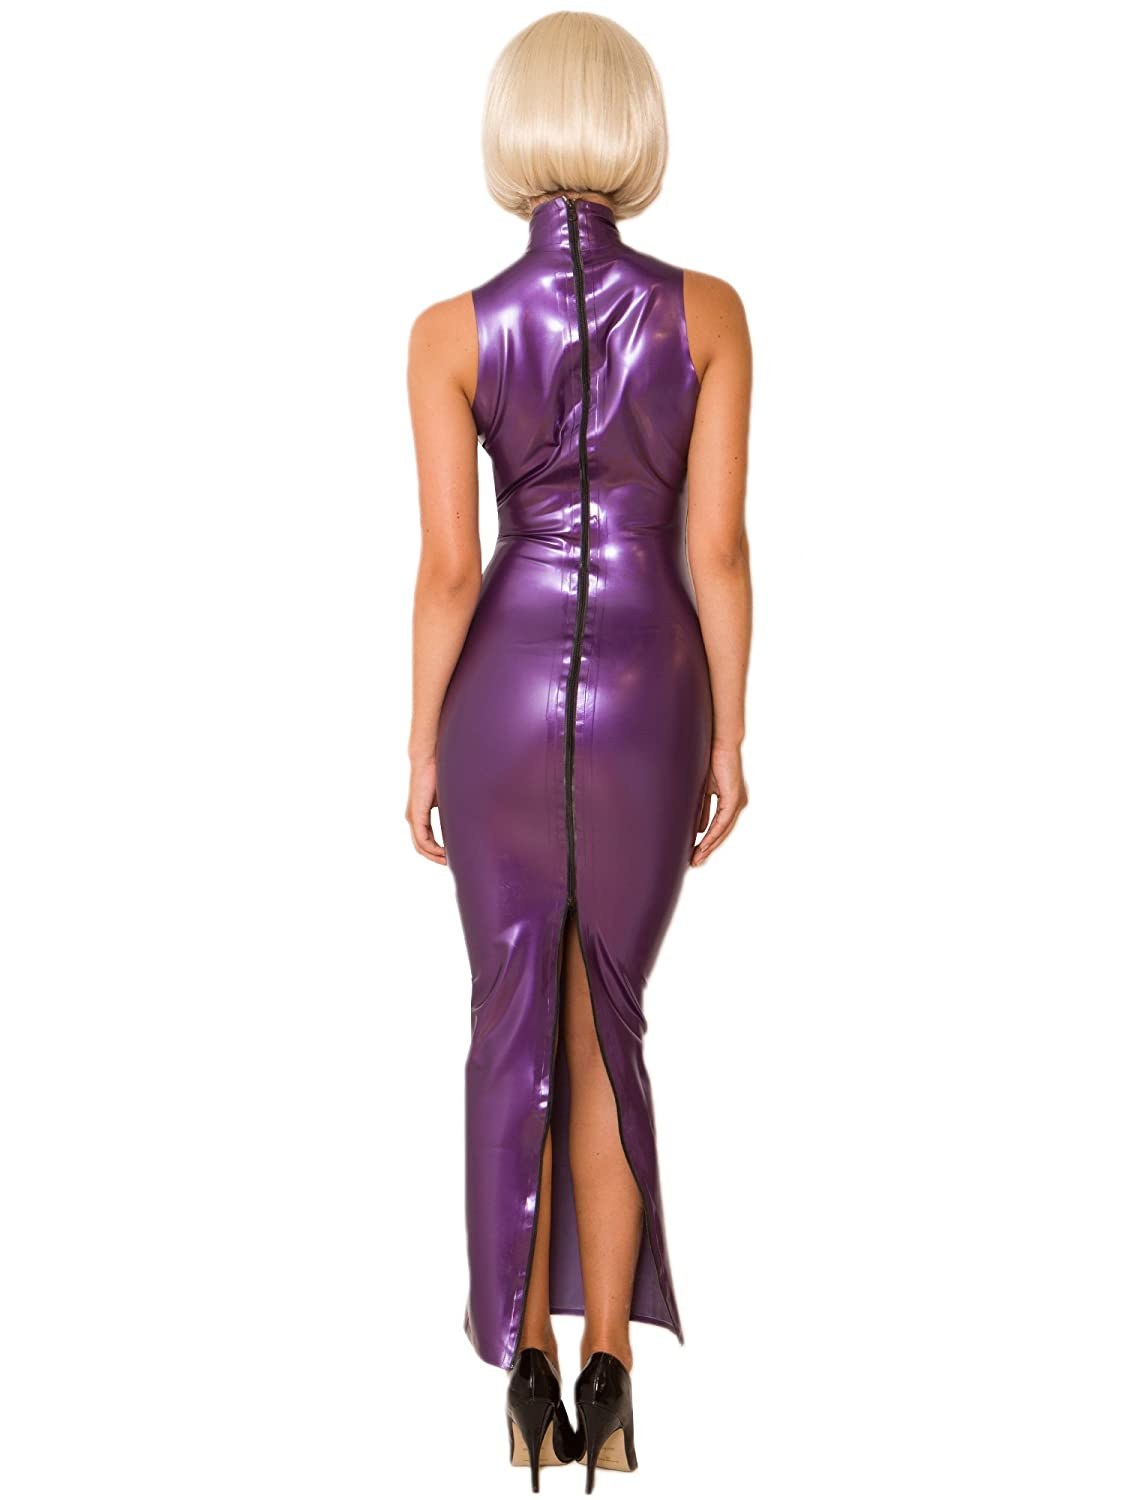 6a9fce0a0b768 Honour Purple Latex Hobble Dress Purple  Amazon.co.uk  Clothing